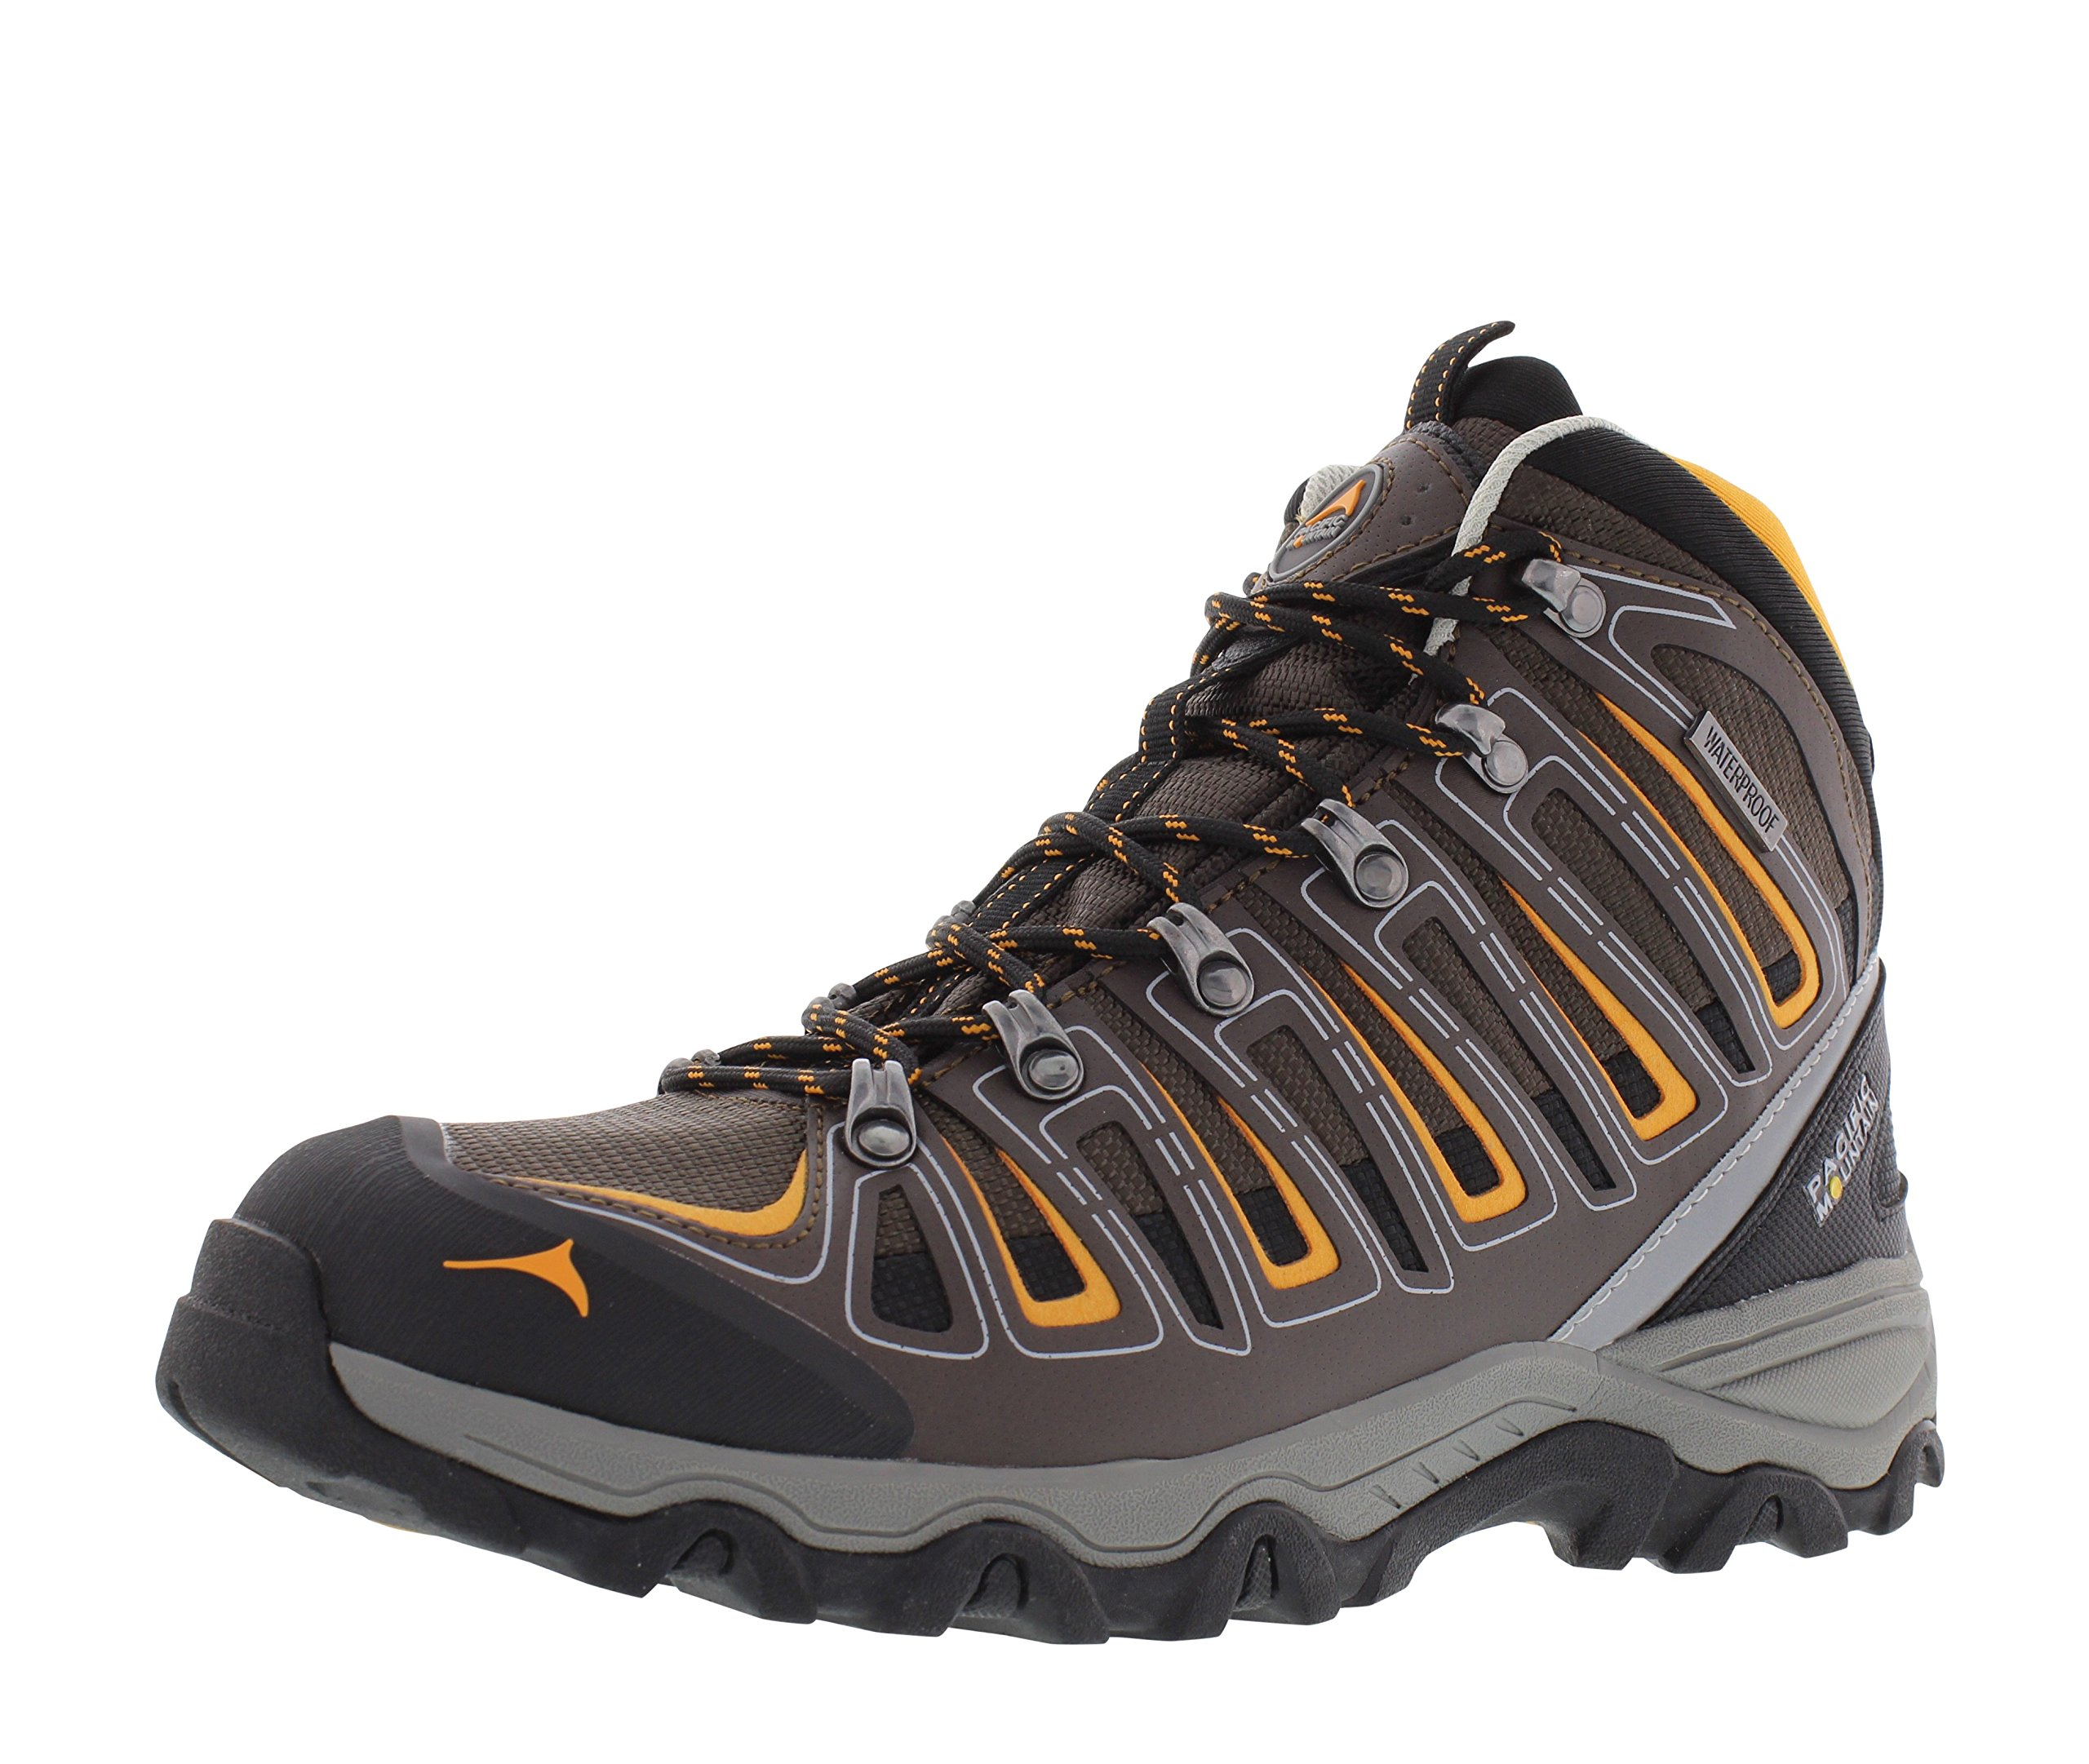 Pacific Mountain Incline Men's Waterproof Hiking Backpacking Mid-Cut Chocolate/Orange/Black Boots Size 7.5